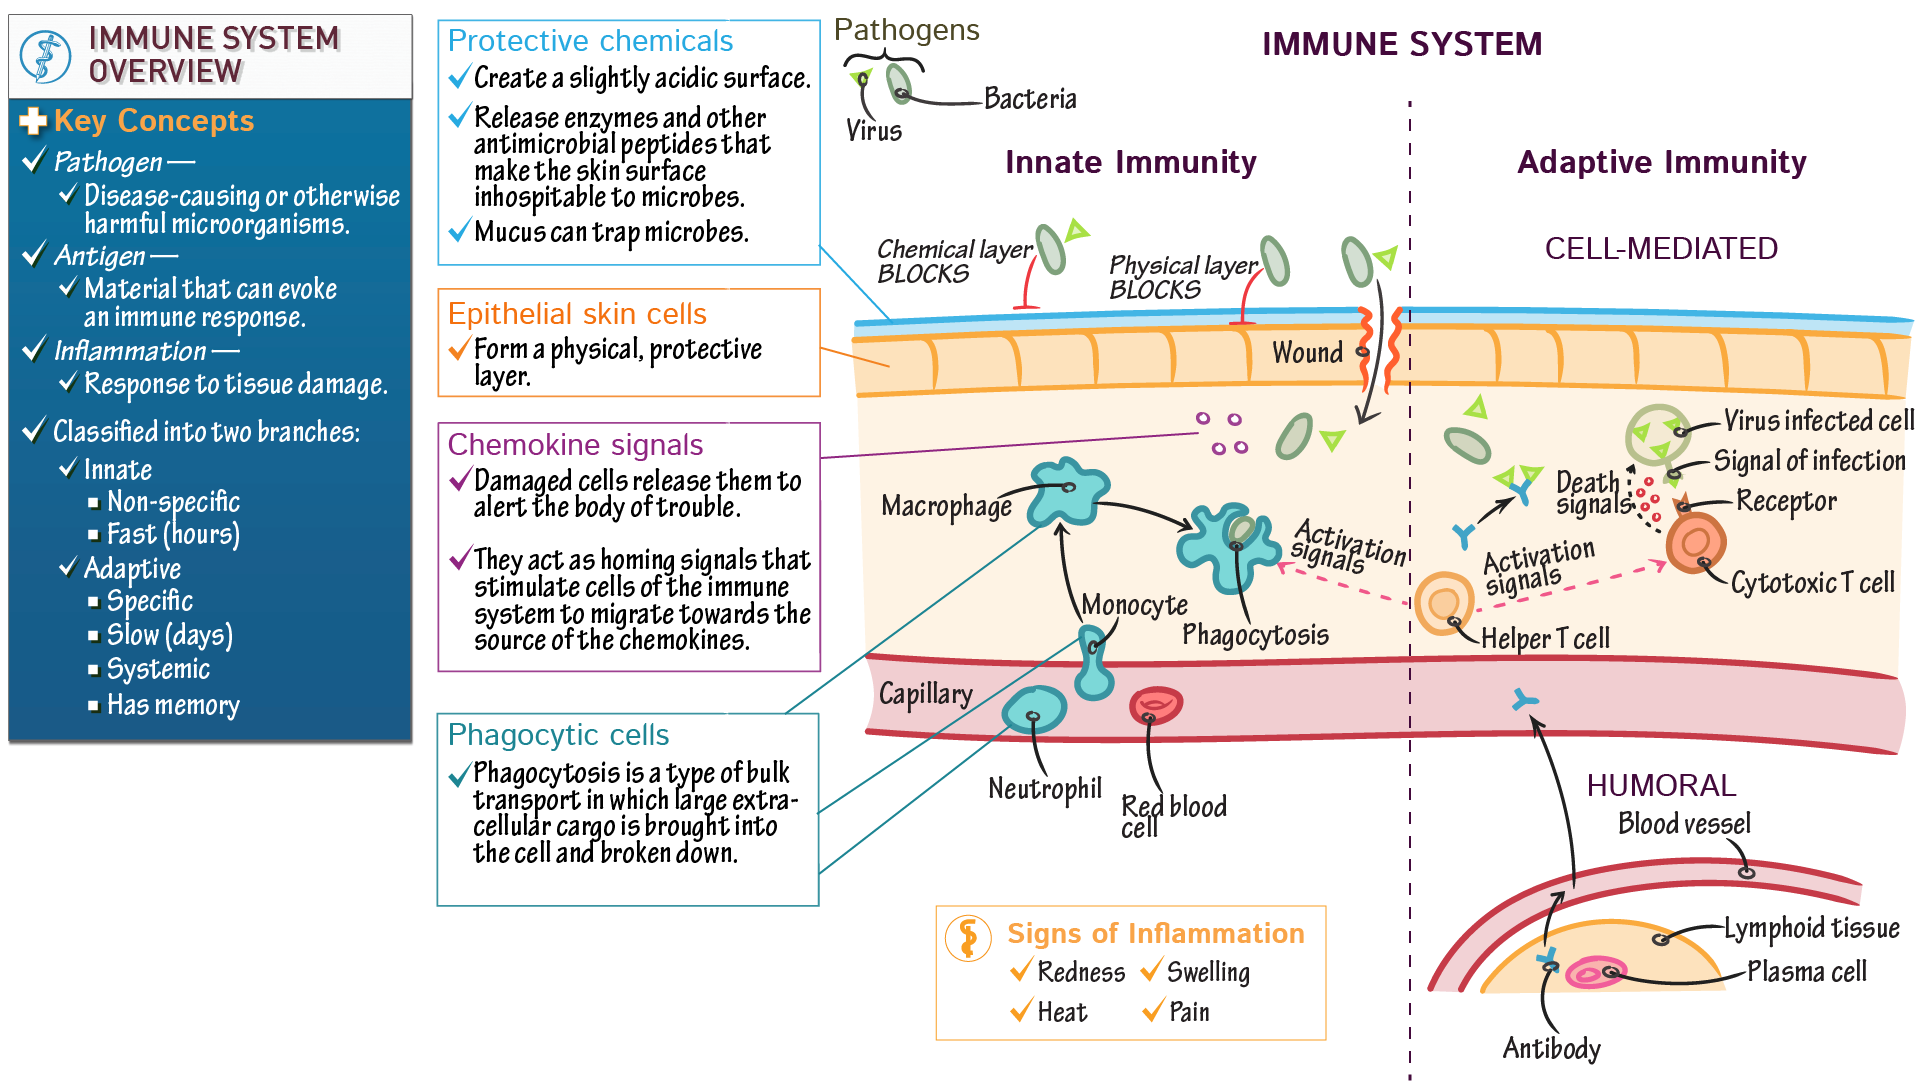 Anatomy & Physiology: Immune System Overview | Draw It to Know It